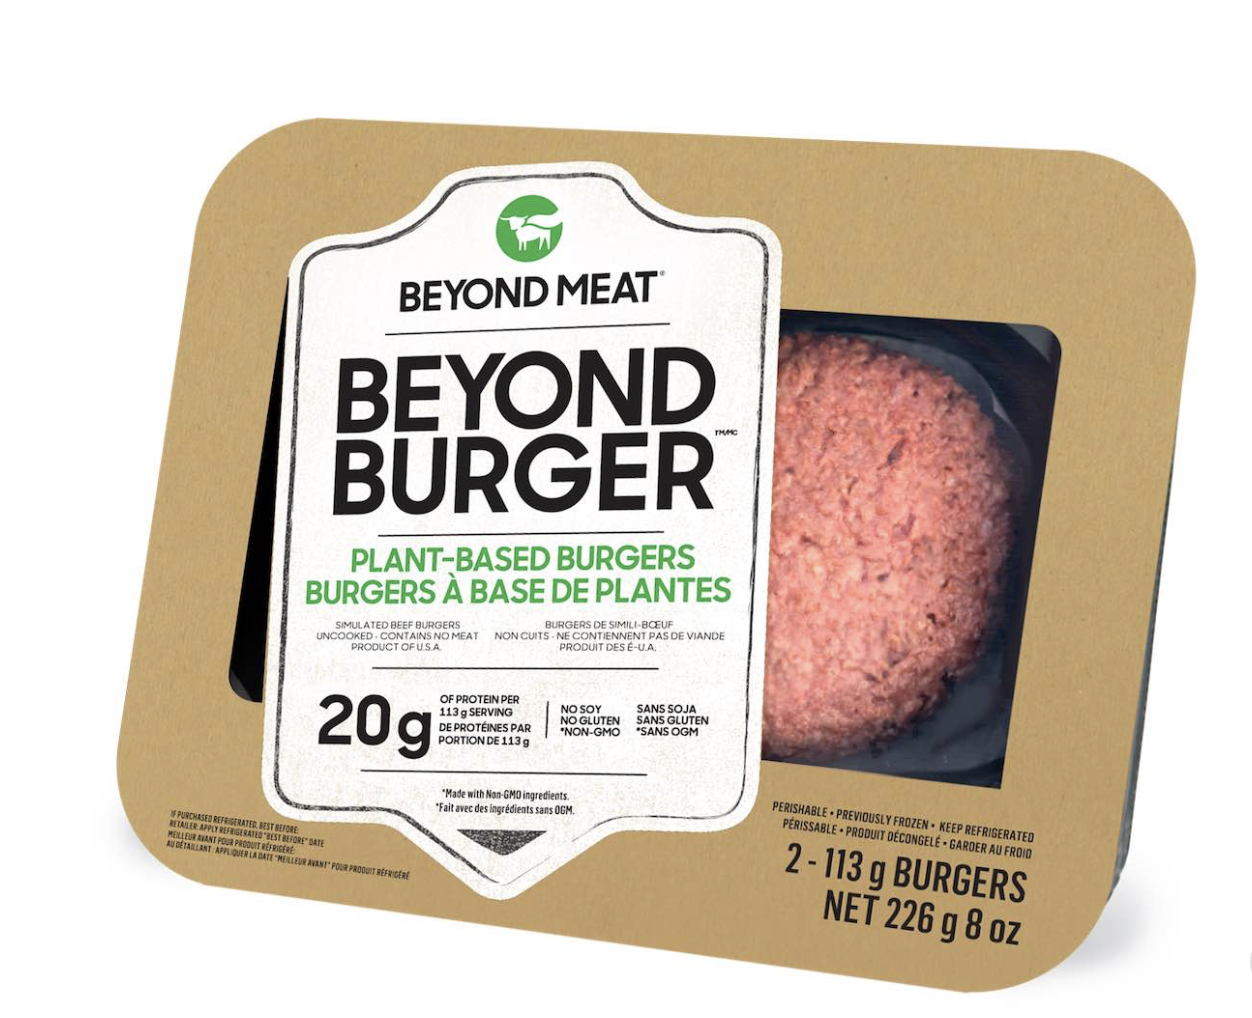 The Beyond Meat Burger Review